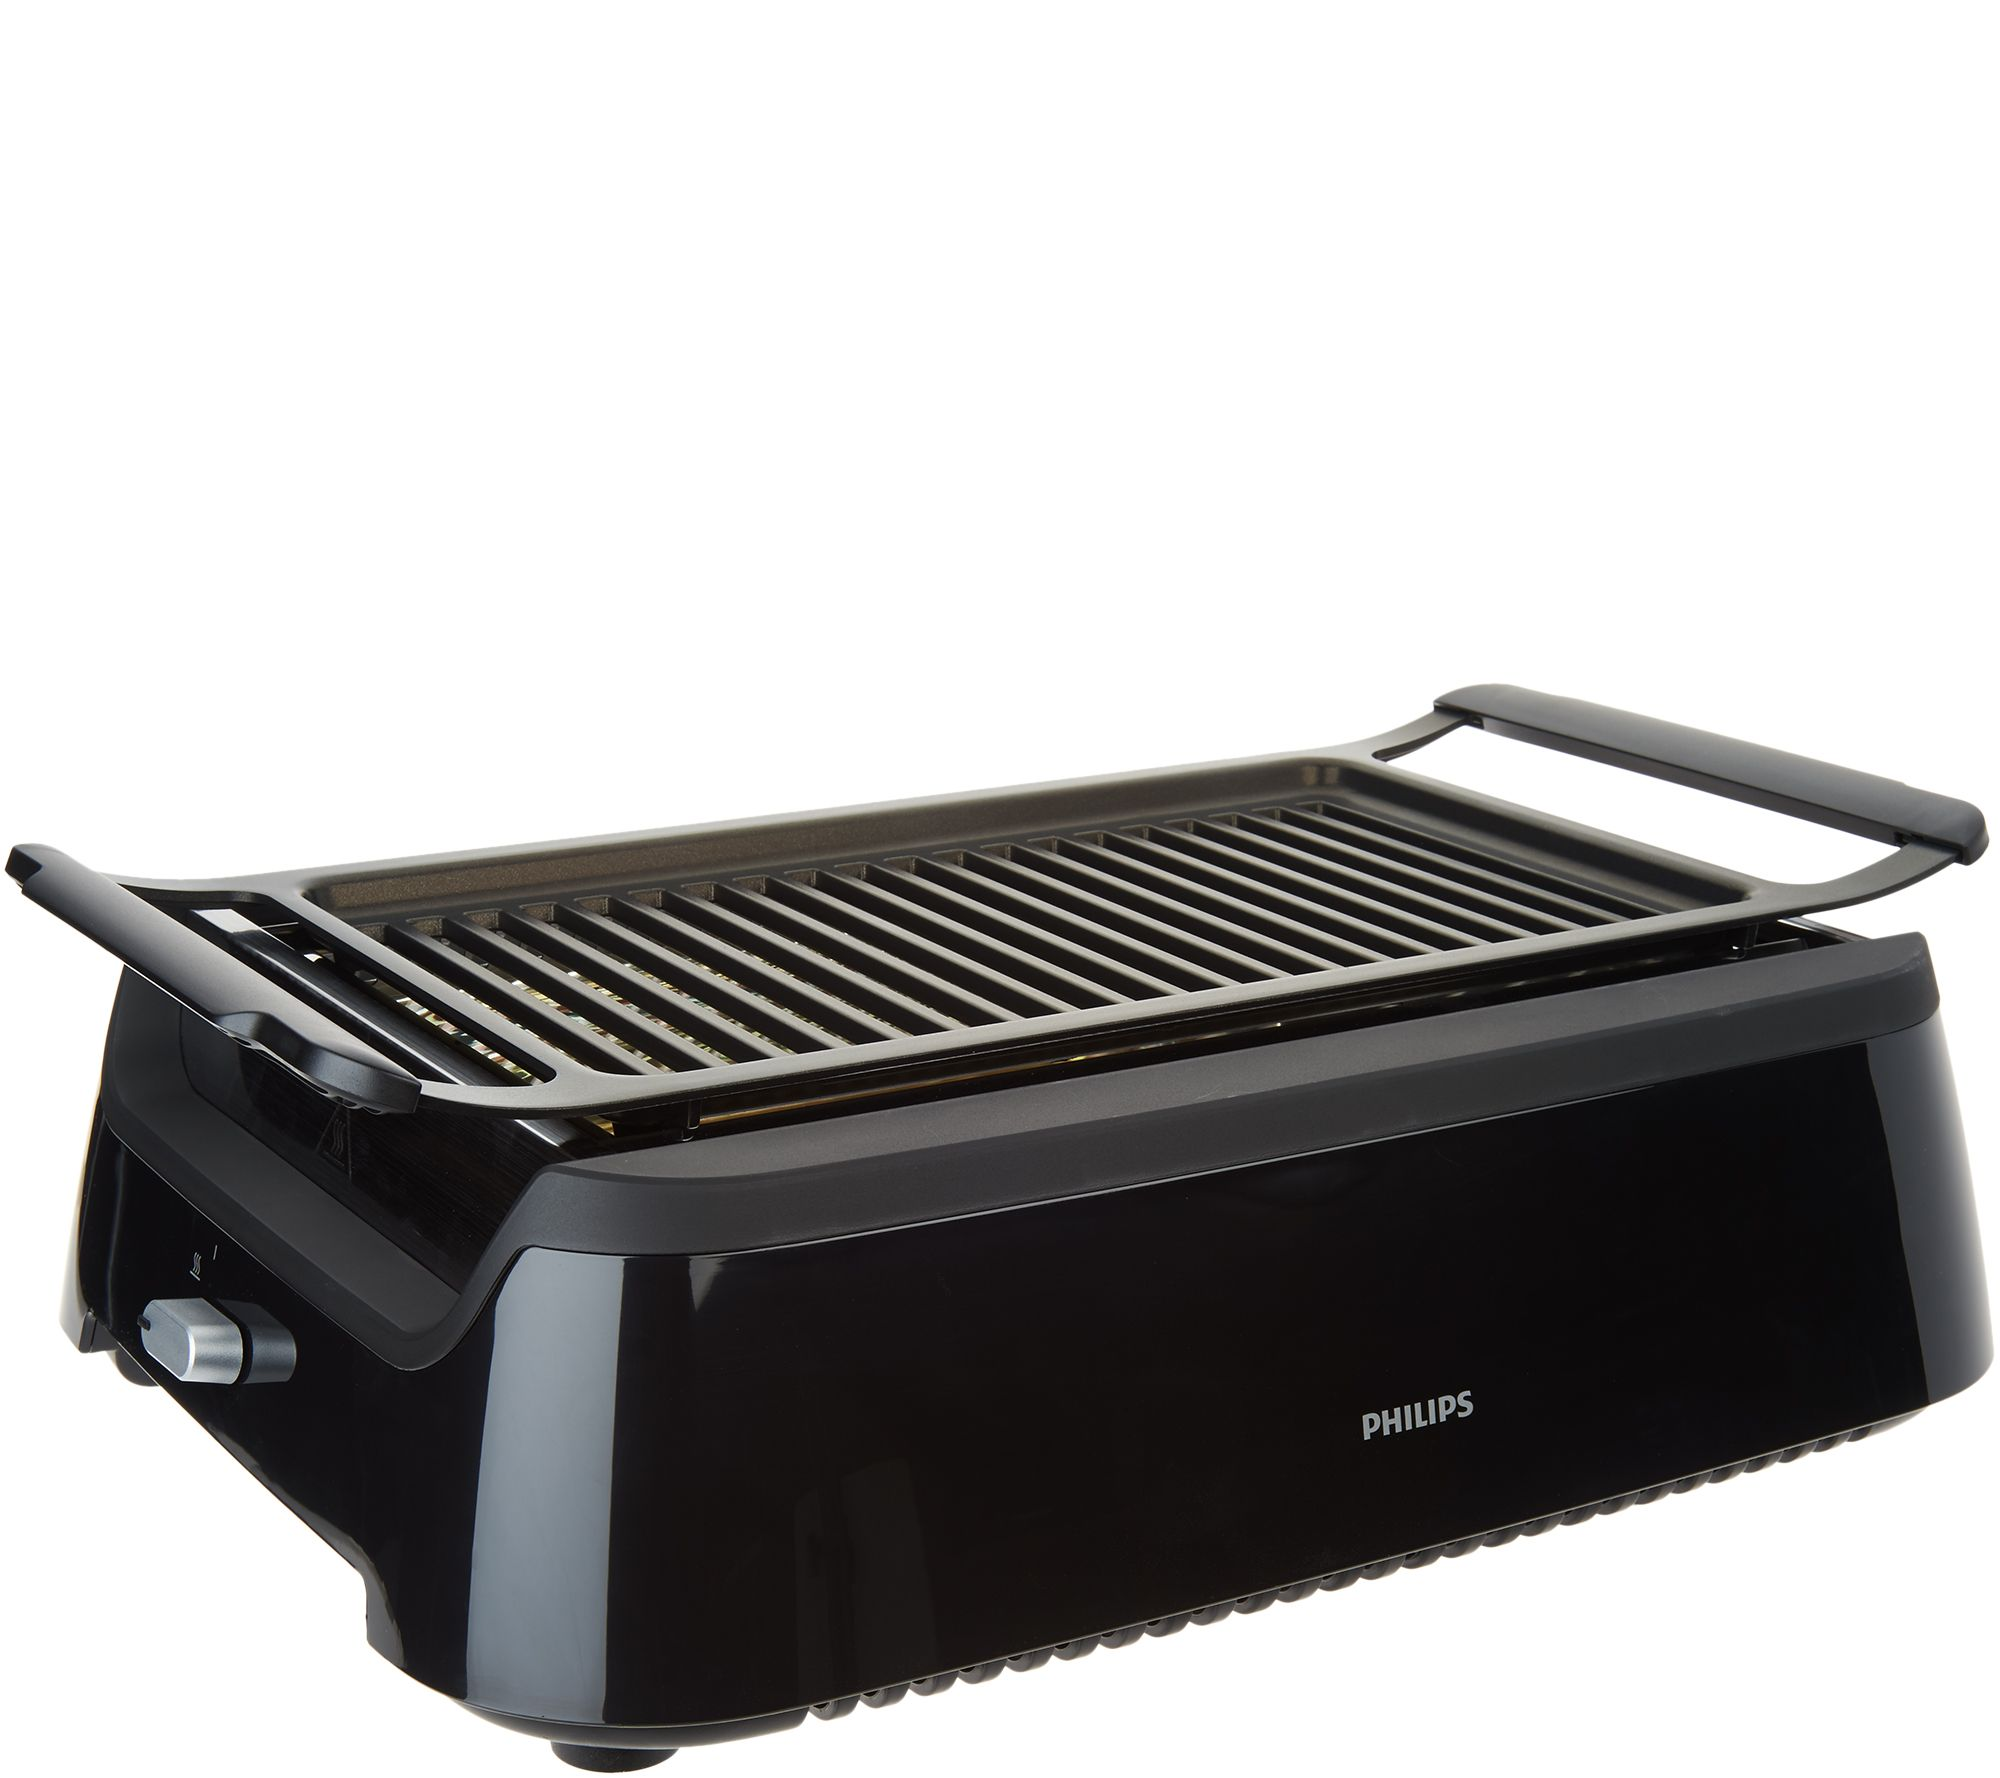 Philips Indoor Smoke-less Grill with Infrared Heat Technology ...